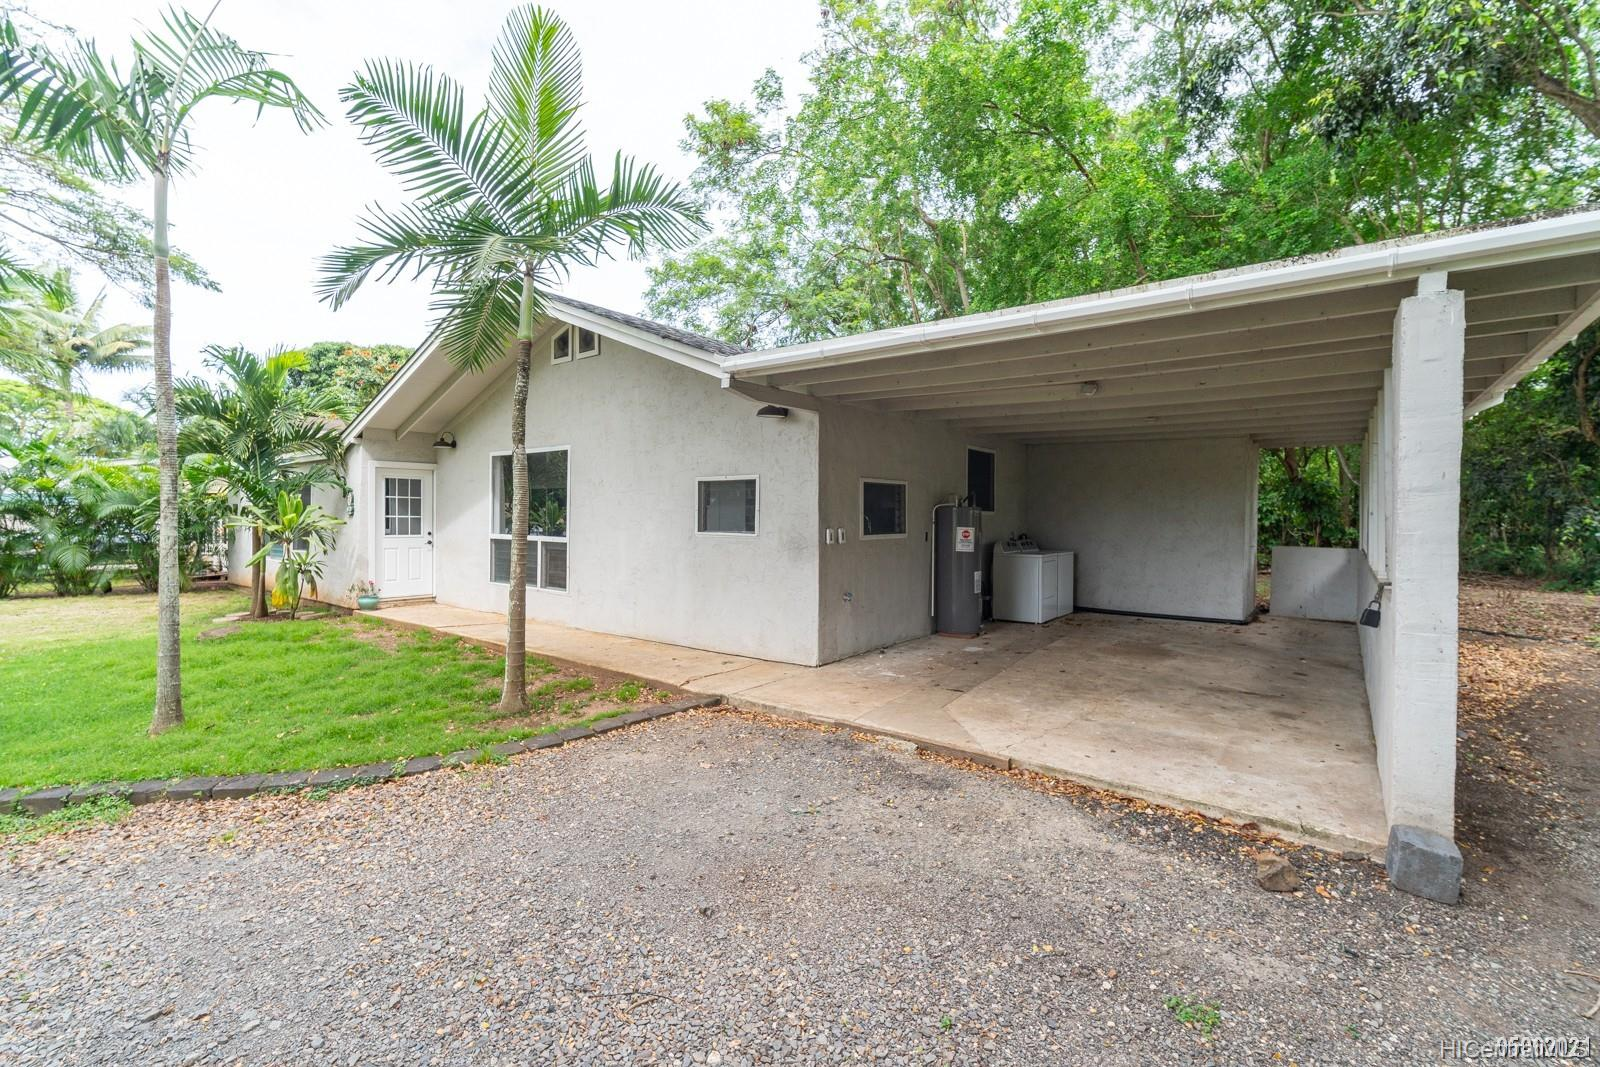 41-363 Saddle City Road Waimanalo - Rental - photo 2 of 20